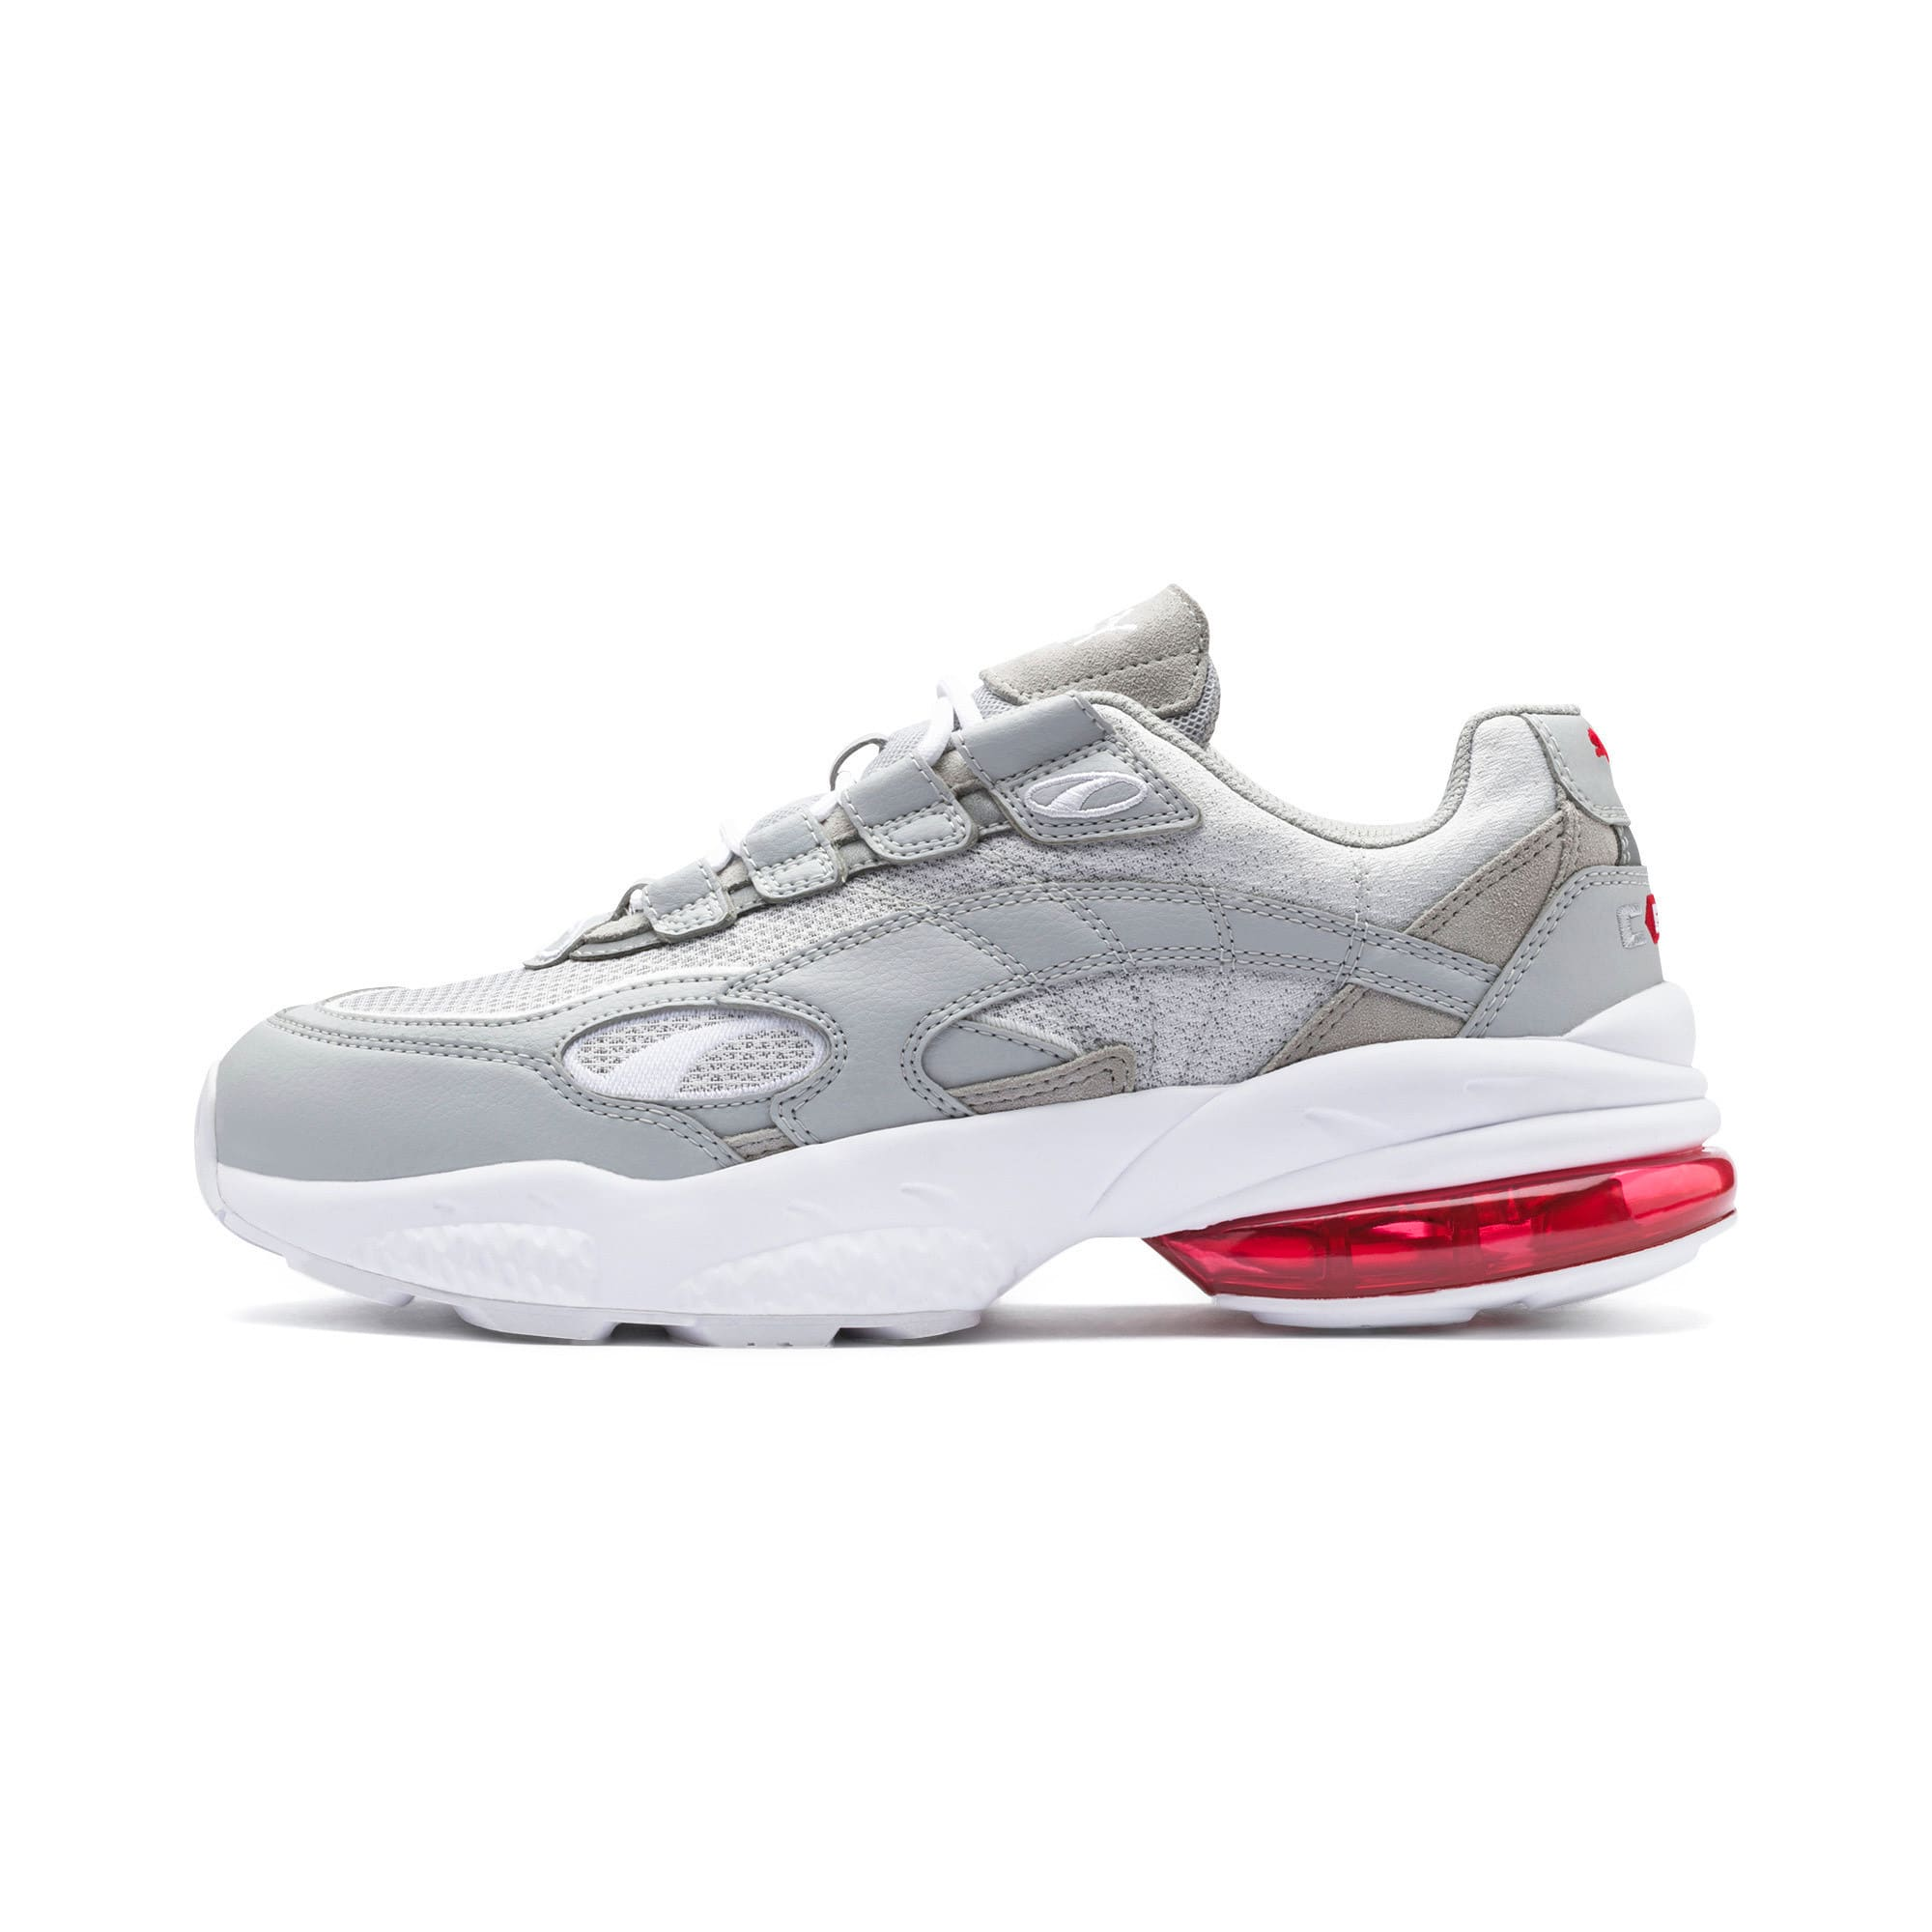 Thumbnail 1 of CELL Venom Alert Trainers, High Rise-Puma White, medium-IND